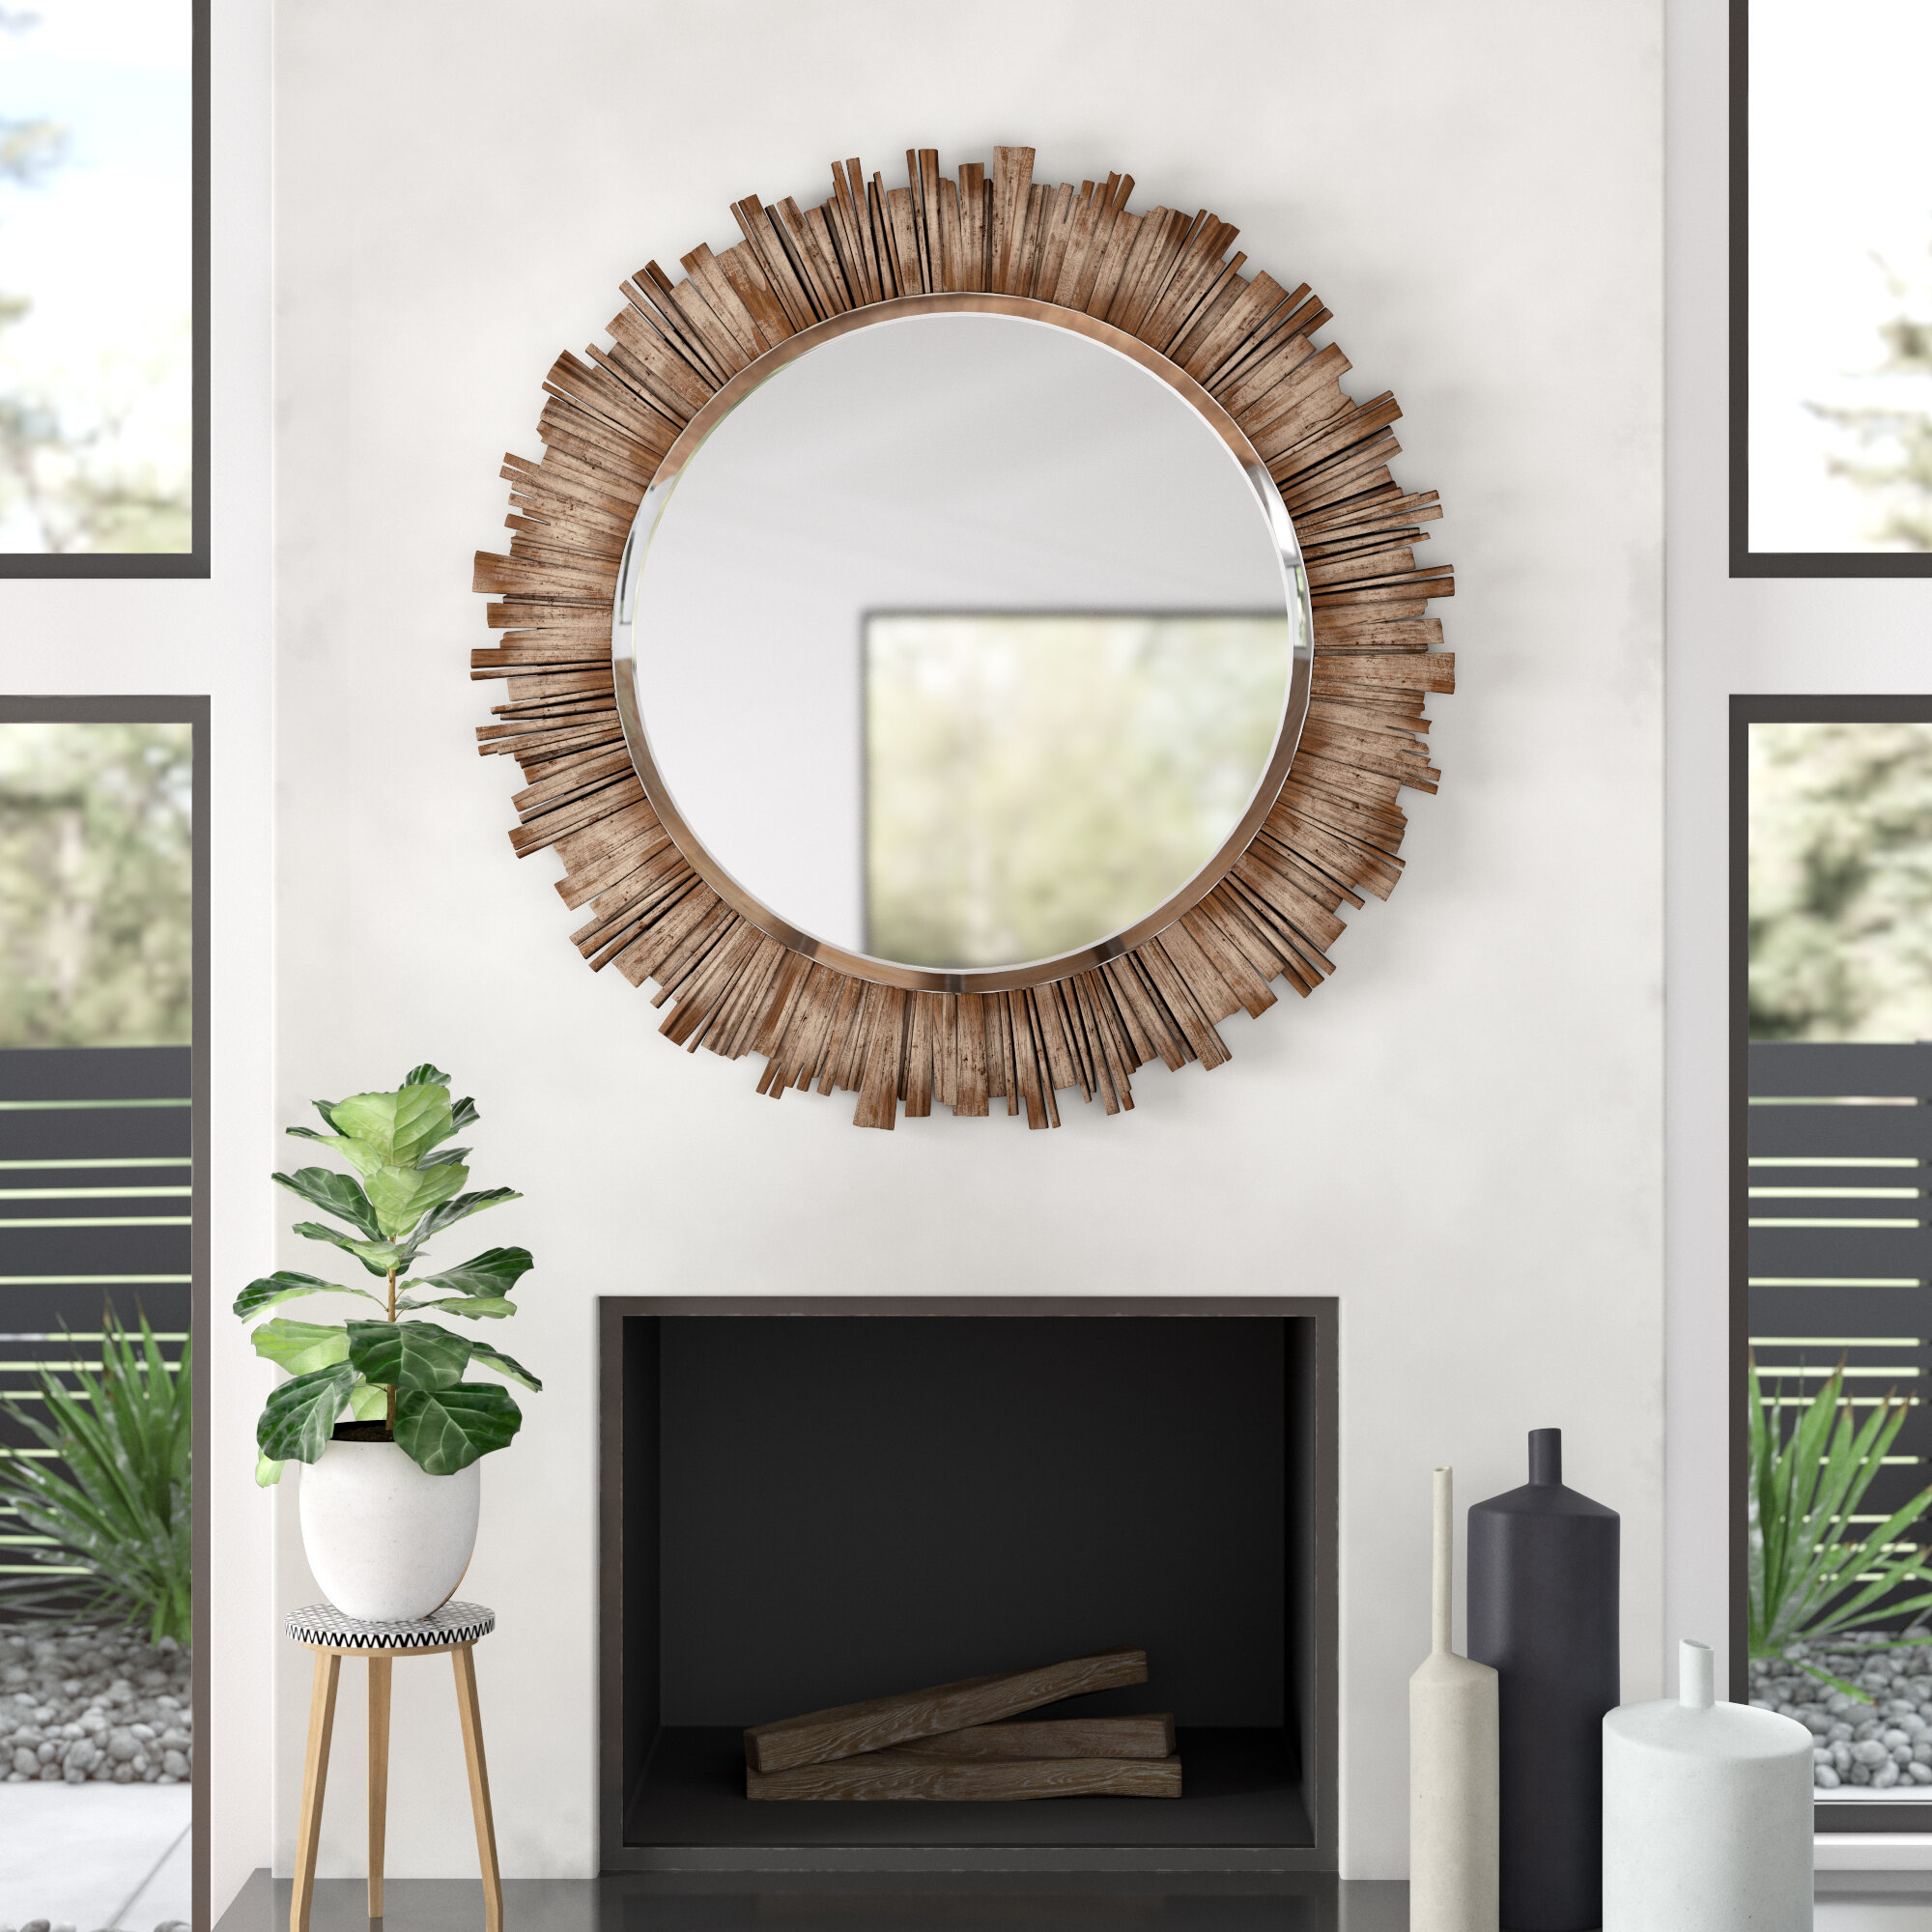 Raleigh Wall Mirror & Reviews | Allmodern With Point Reyes Molten Round Wall Mirrors (View 11 of 20)